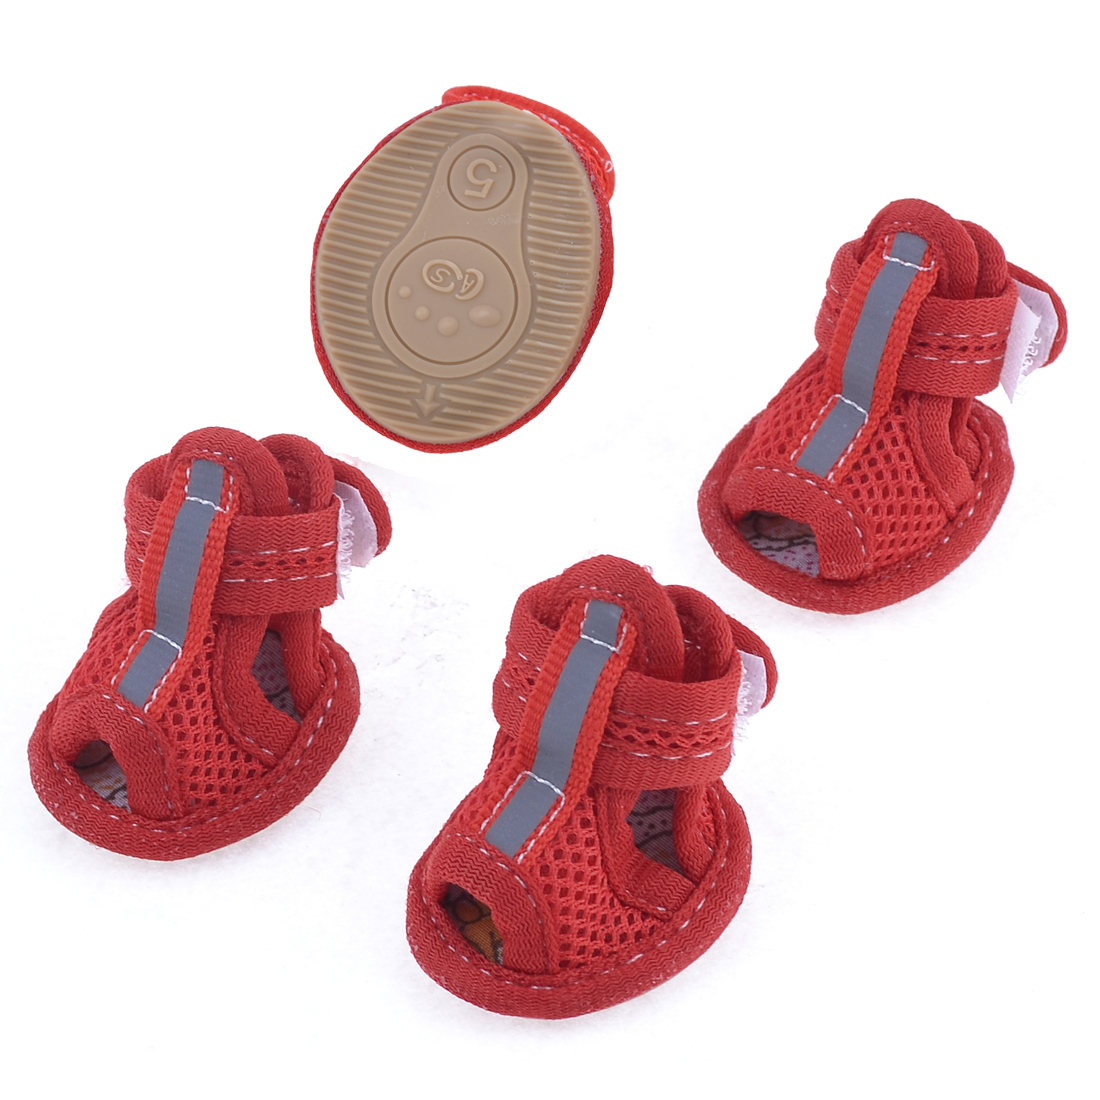 2 Pairs Rubber Sole Red Mesh Sandals Yorkie Chihuaha Dog Shoes Size L